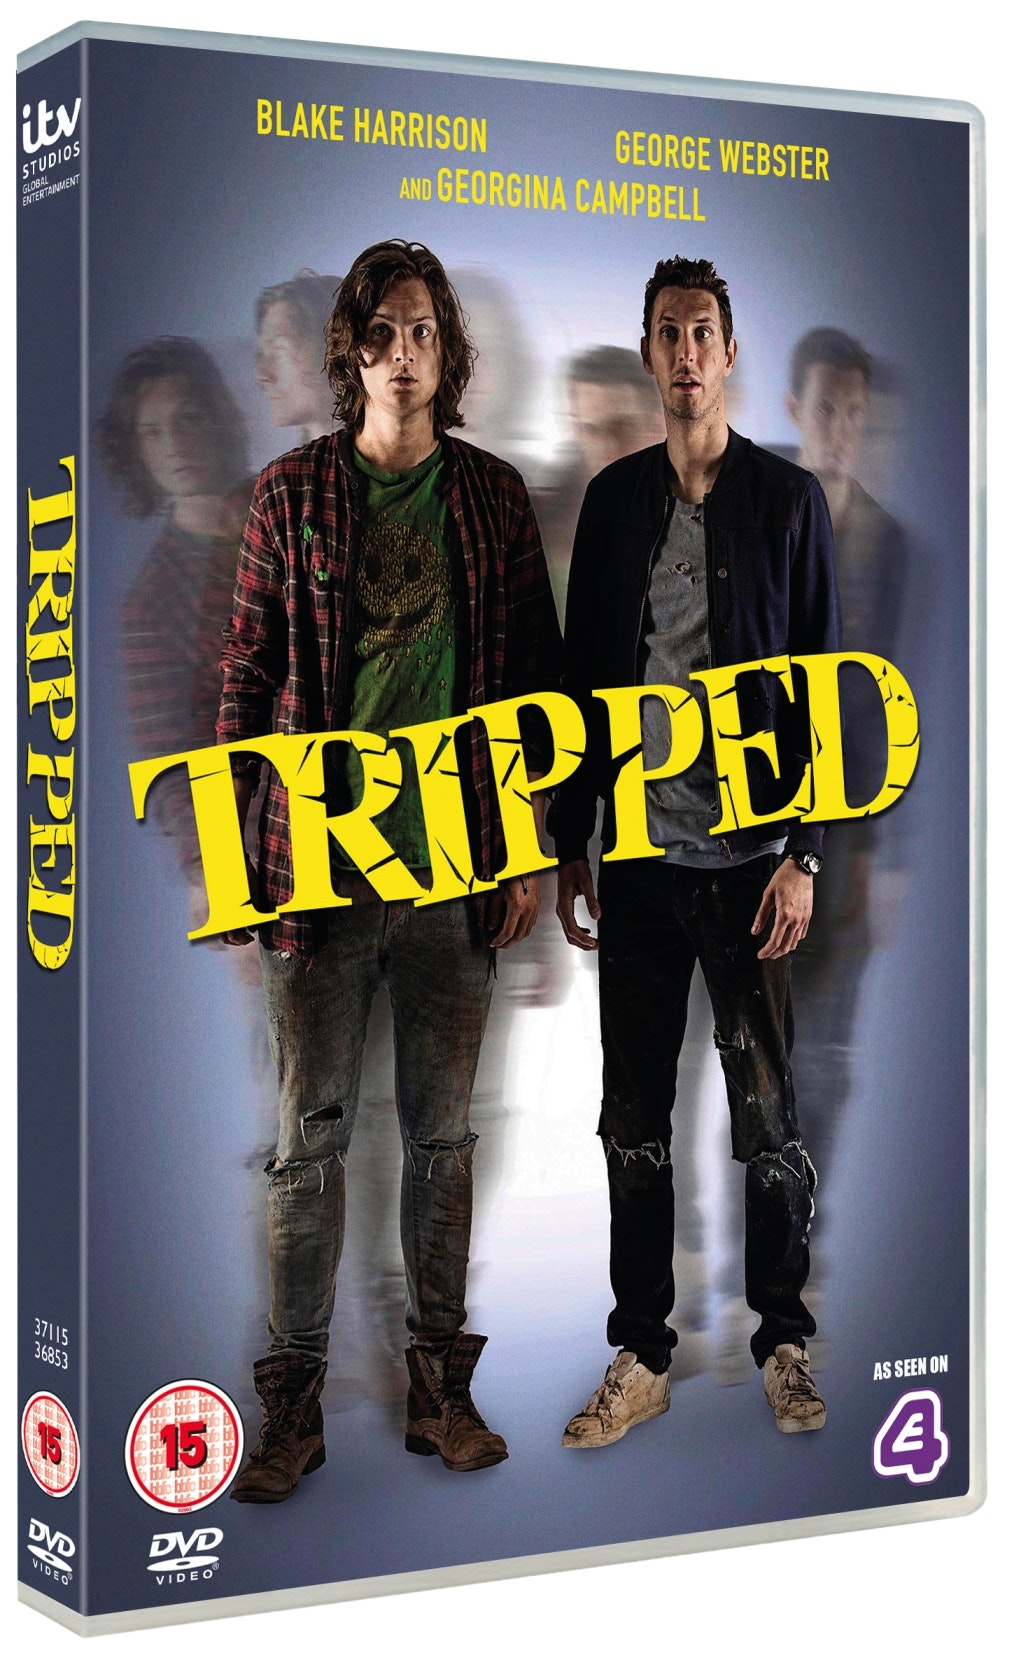 Tripped DVD sweepstakes